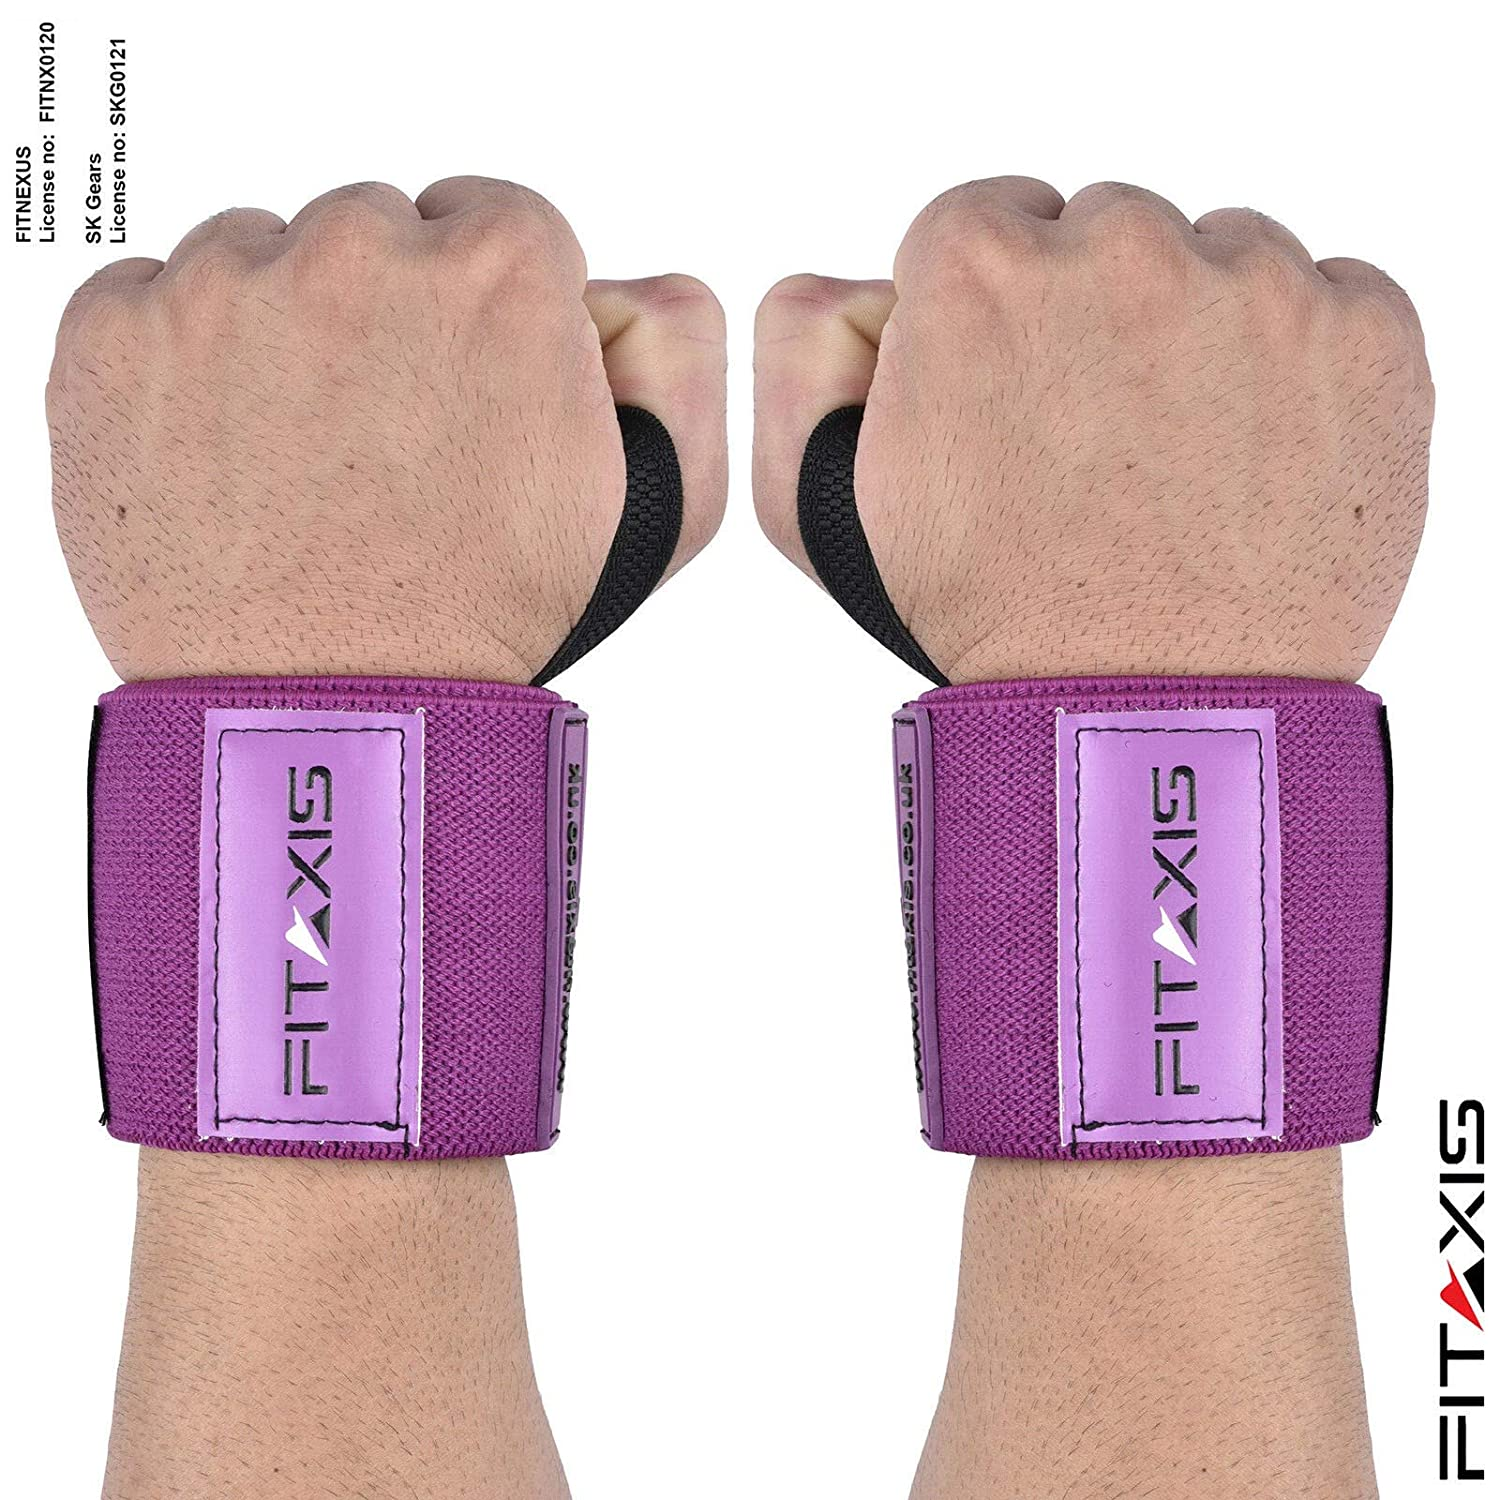 Wrist wraps//Bands for gimnasio fitness Crossfit Weightlifting para hombres y mujeres RED, 24 Mu/ñequeras